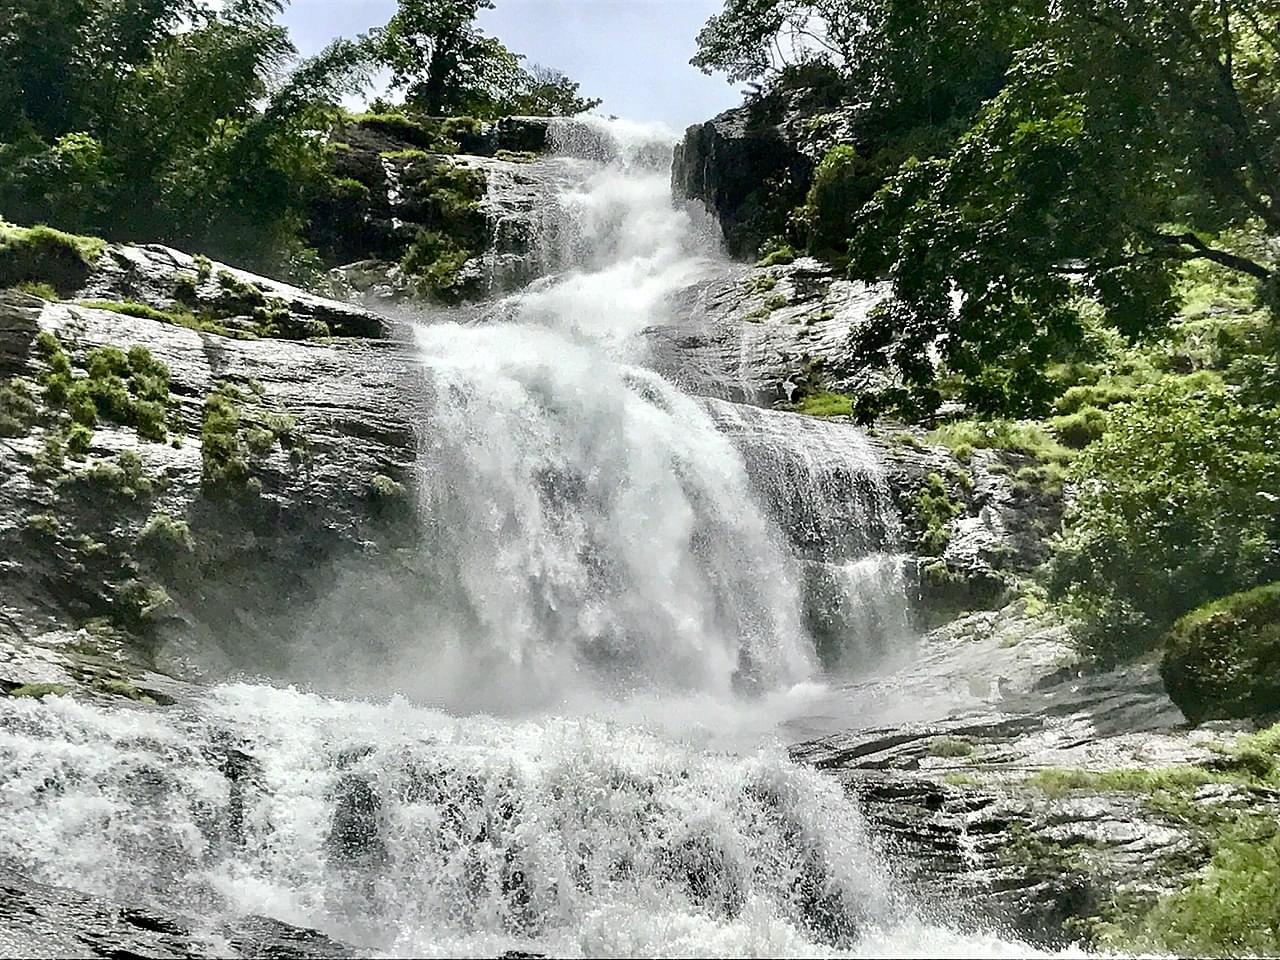 Delighted-Kerala-Tour-Package-with-Athirappilly-Water-Falls-JustWravel-1597392357-5.jpg